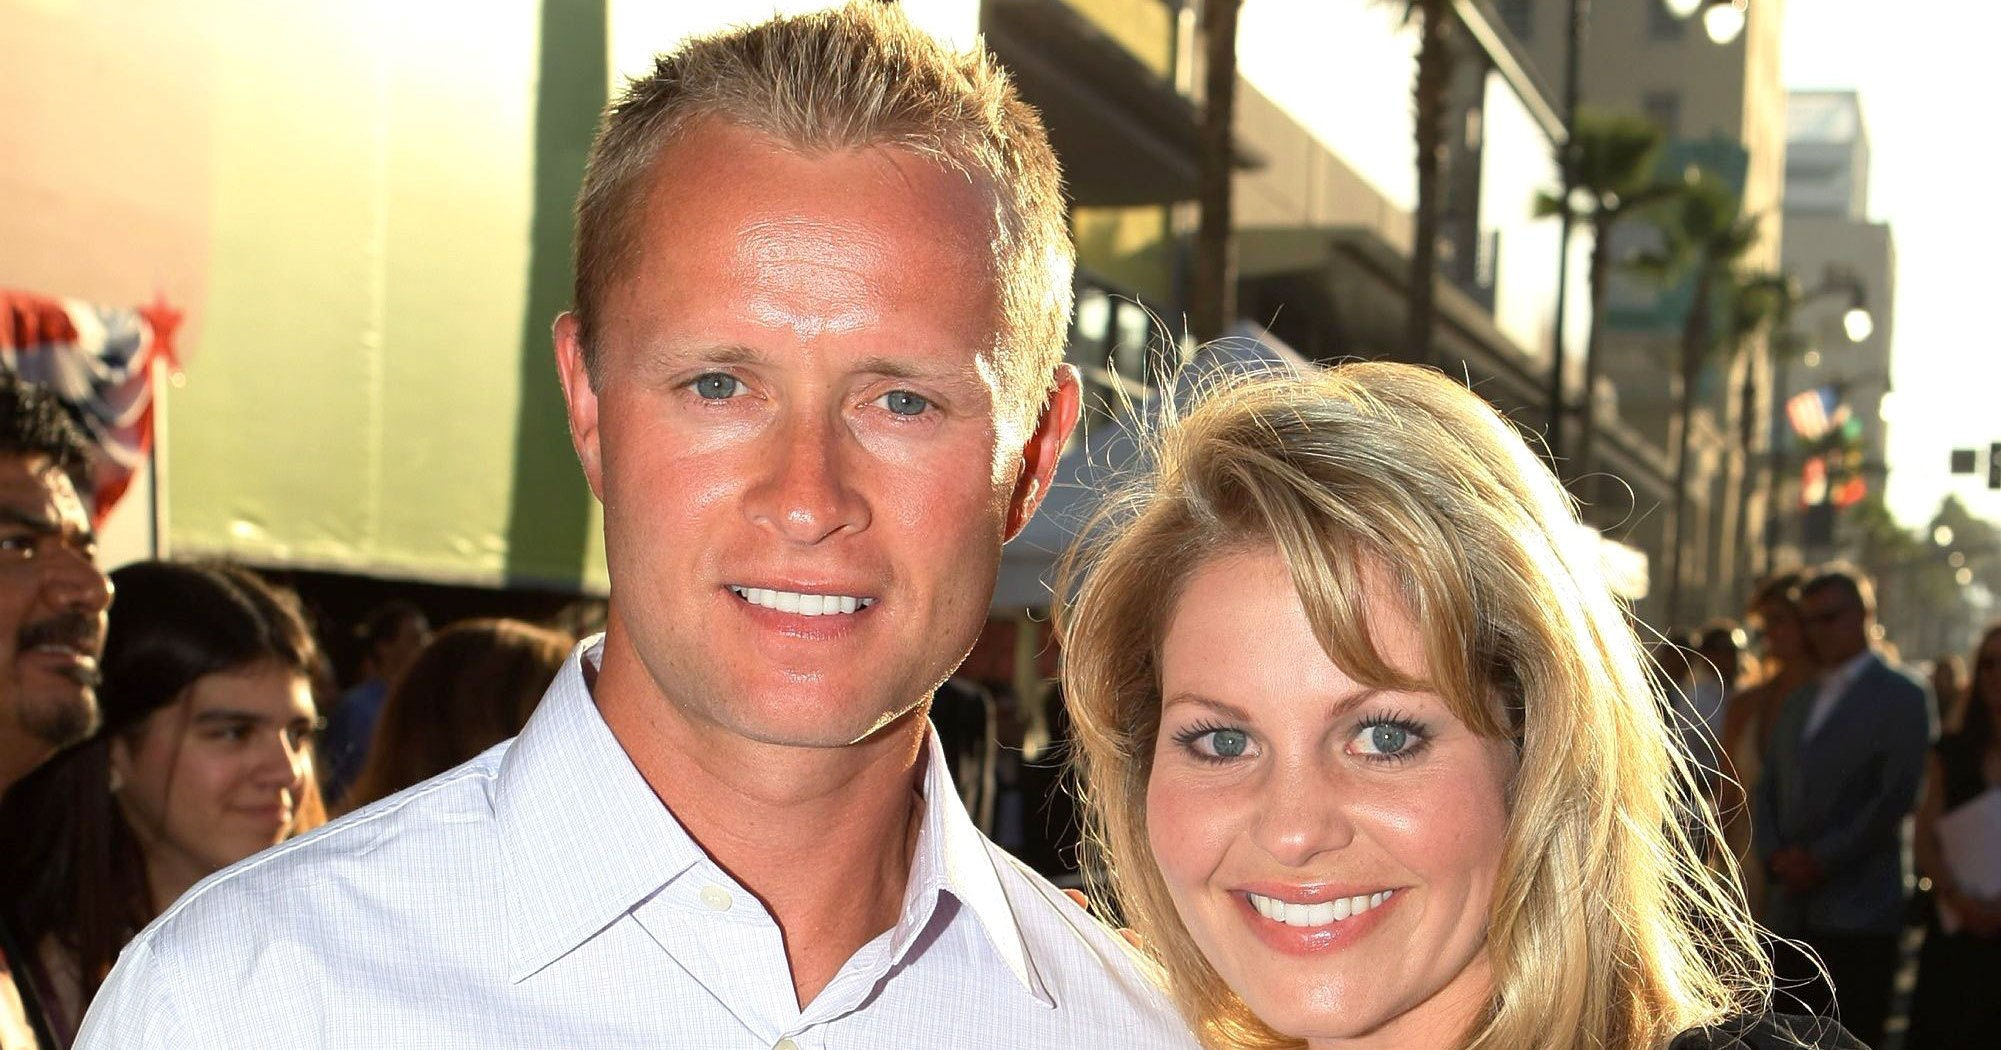 Candace Cameron Bure's Quotes About Decades-Long Marriage to Valeri Bure